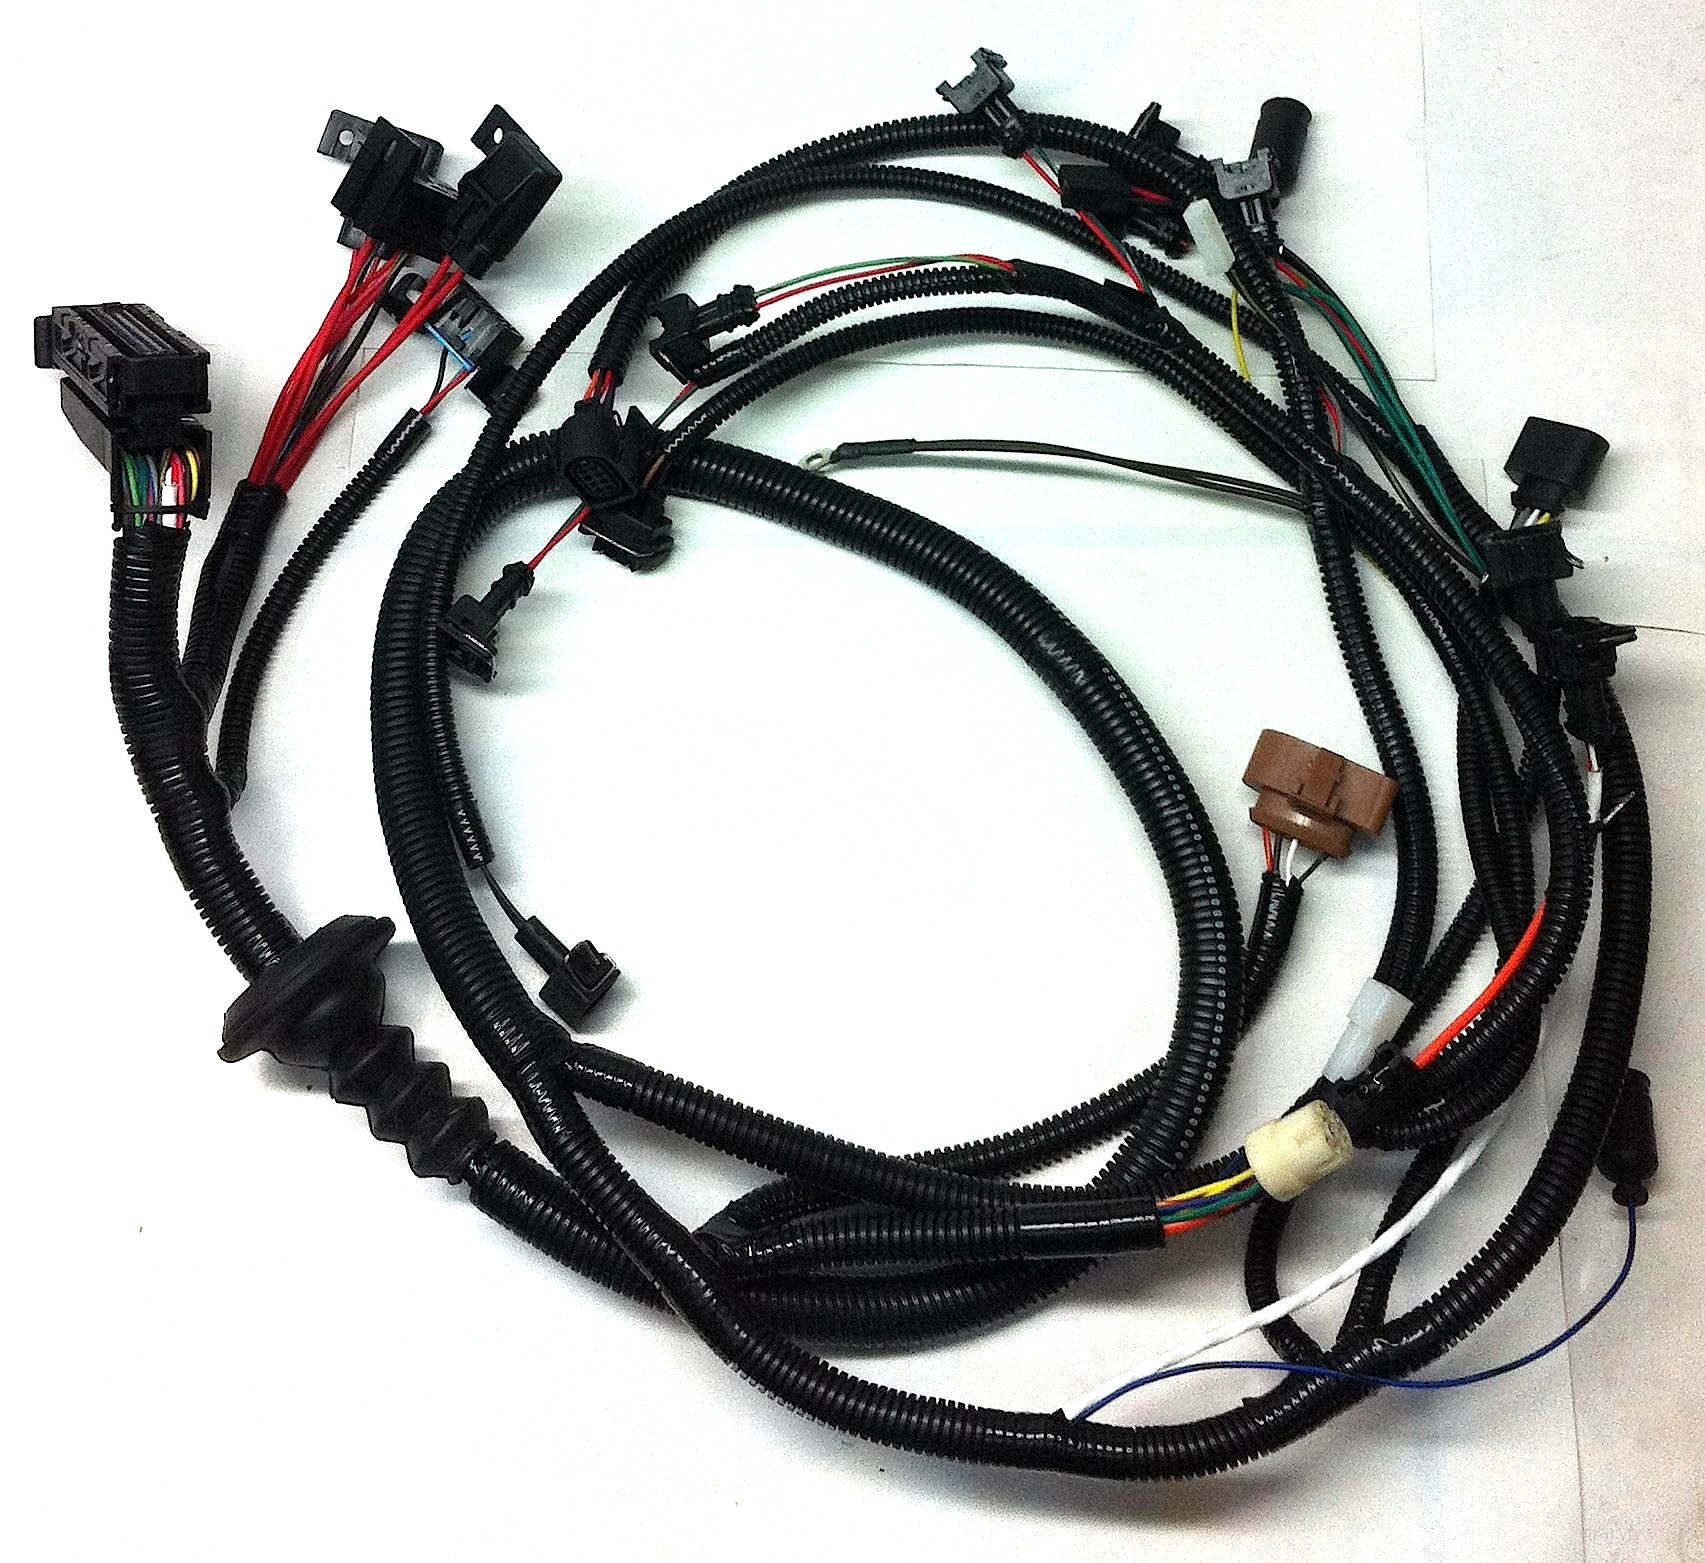 wiring help d16y5 into dx hatch. - honda-tech - honda ... sony automotive audio wiring harness automotive engine wiring harness